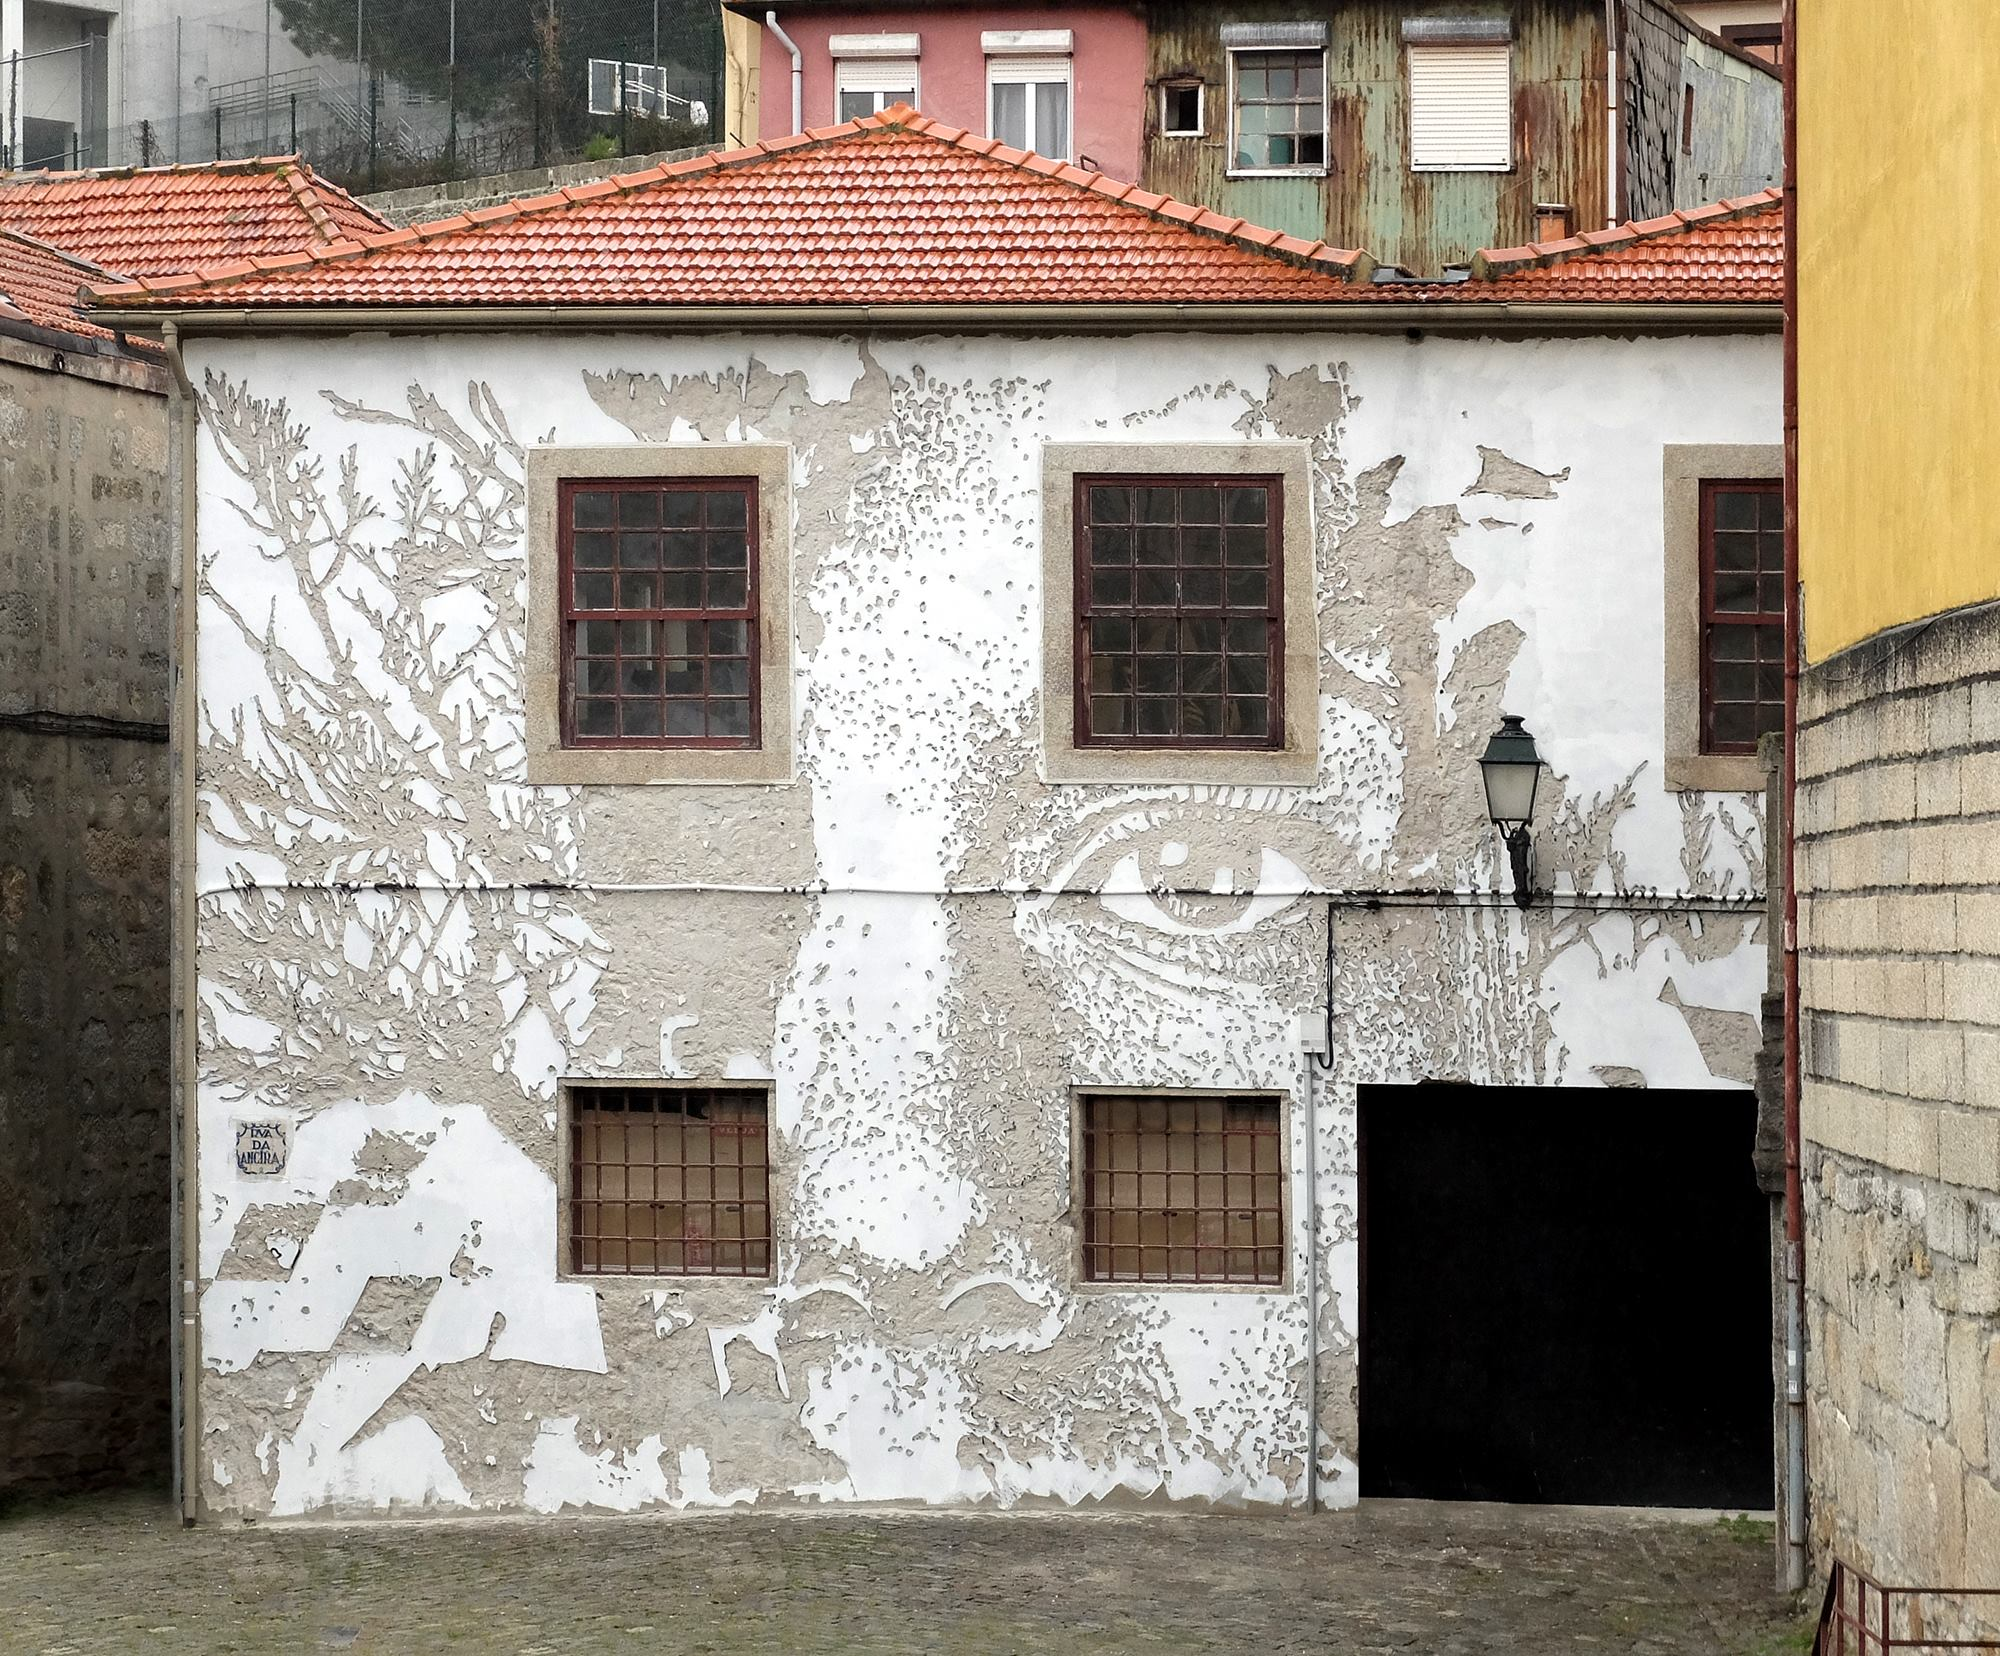 Street Art by Vhils in Porto, Portugal